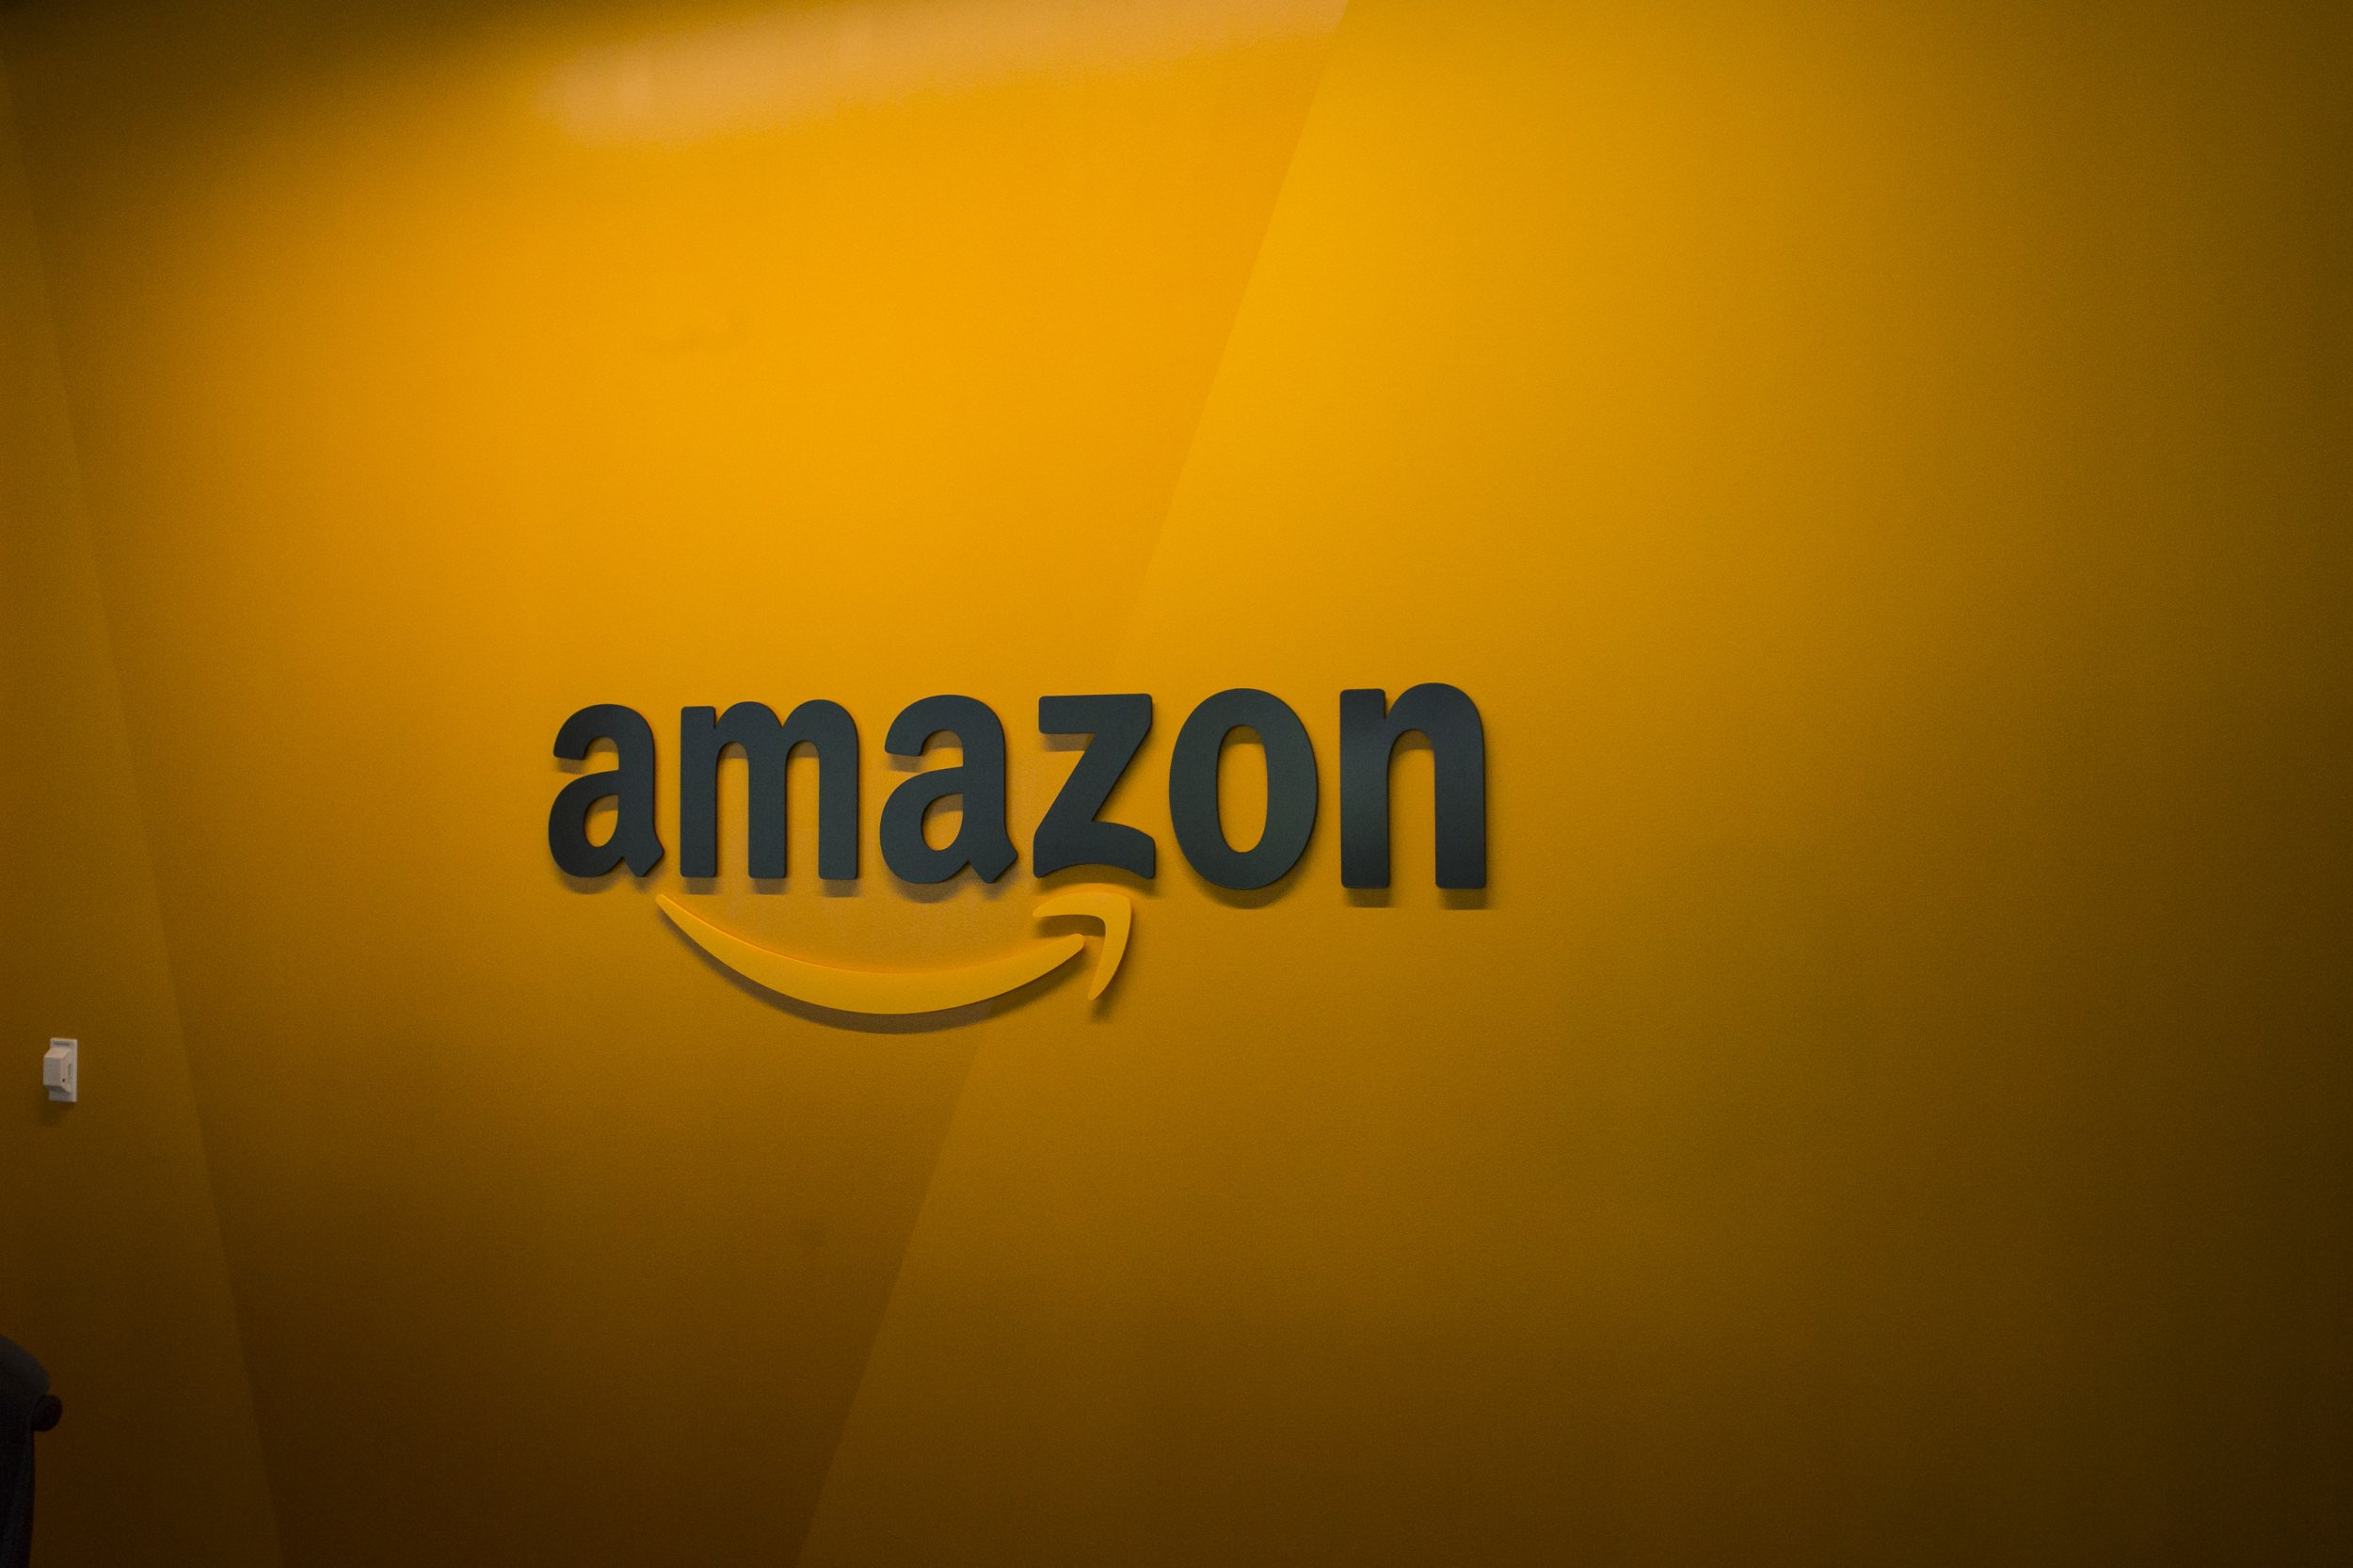 amazon yellow logo